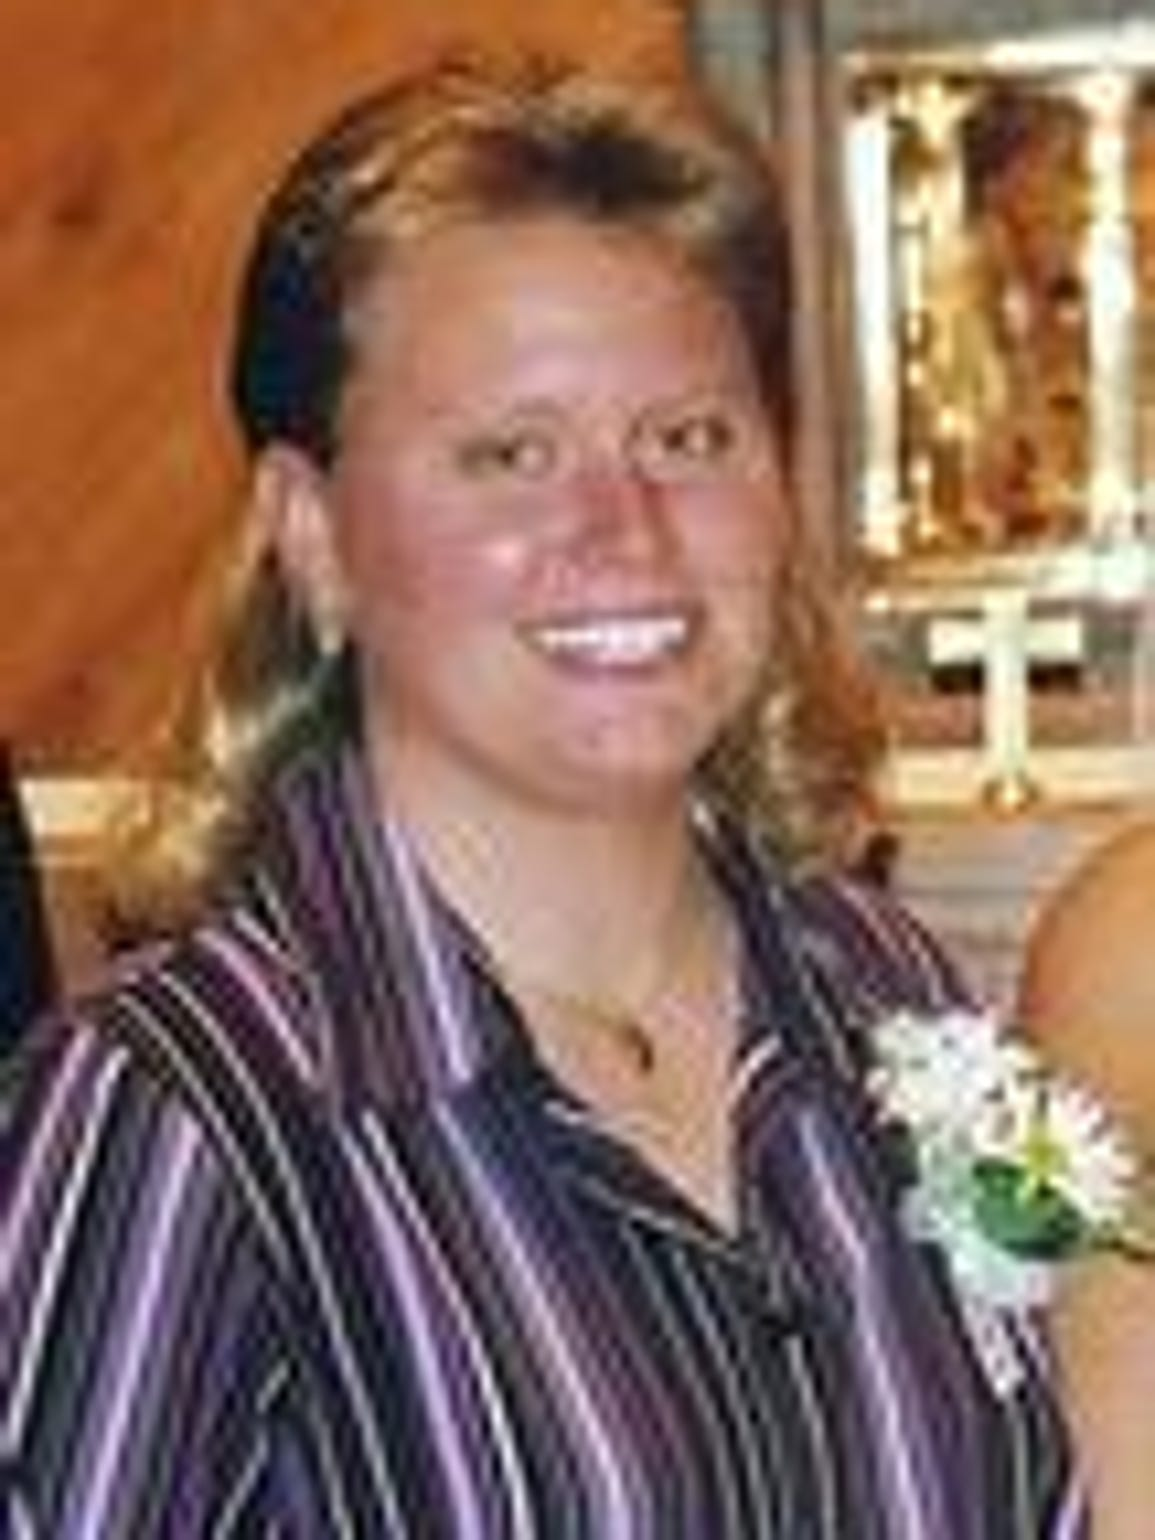 Lara Plamann was 30 years old when she was murdered